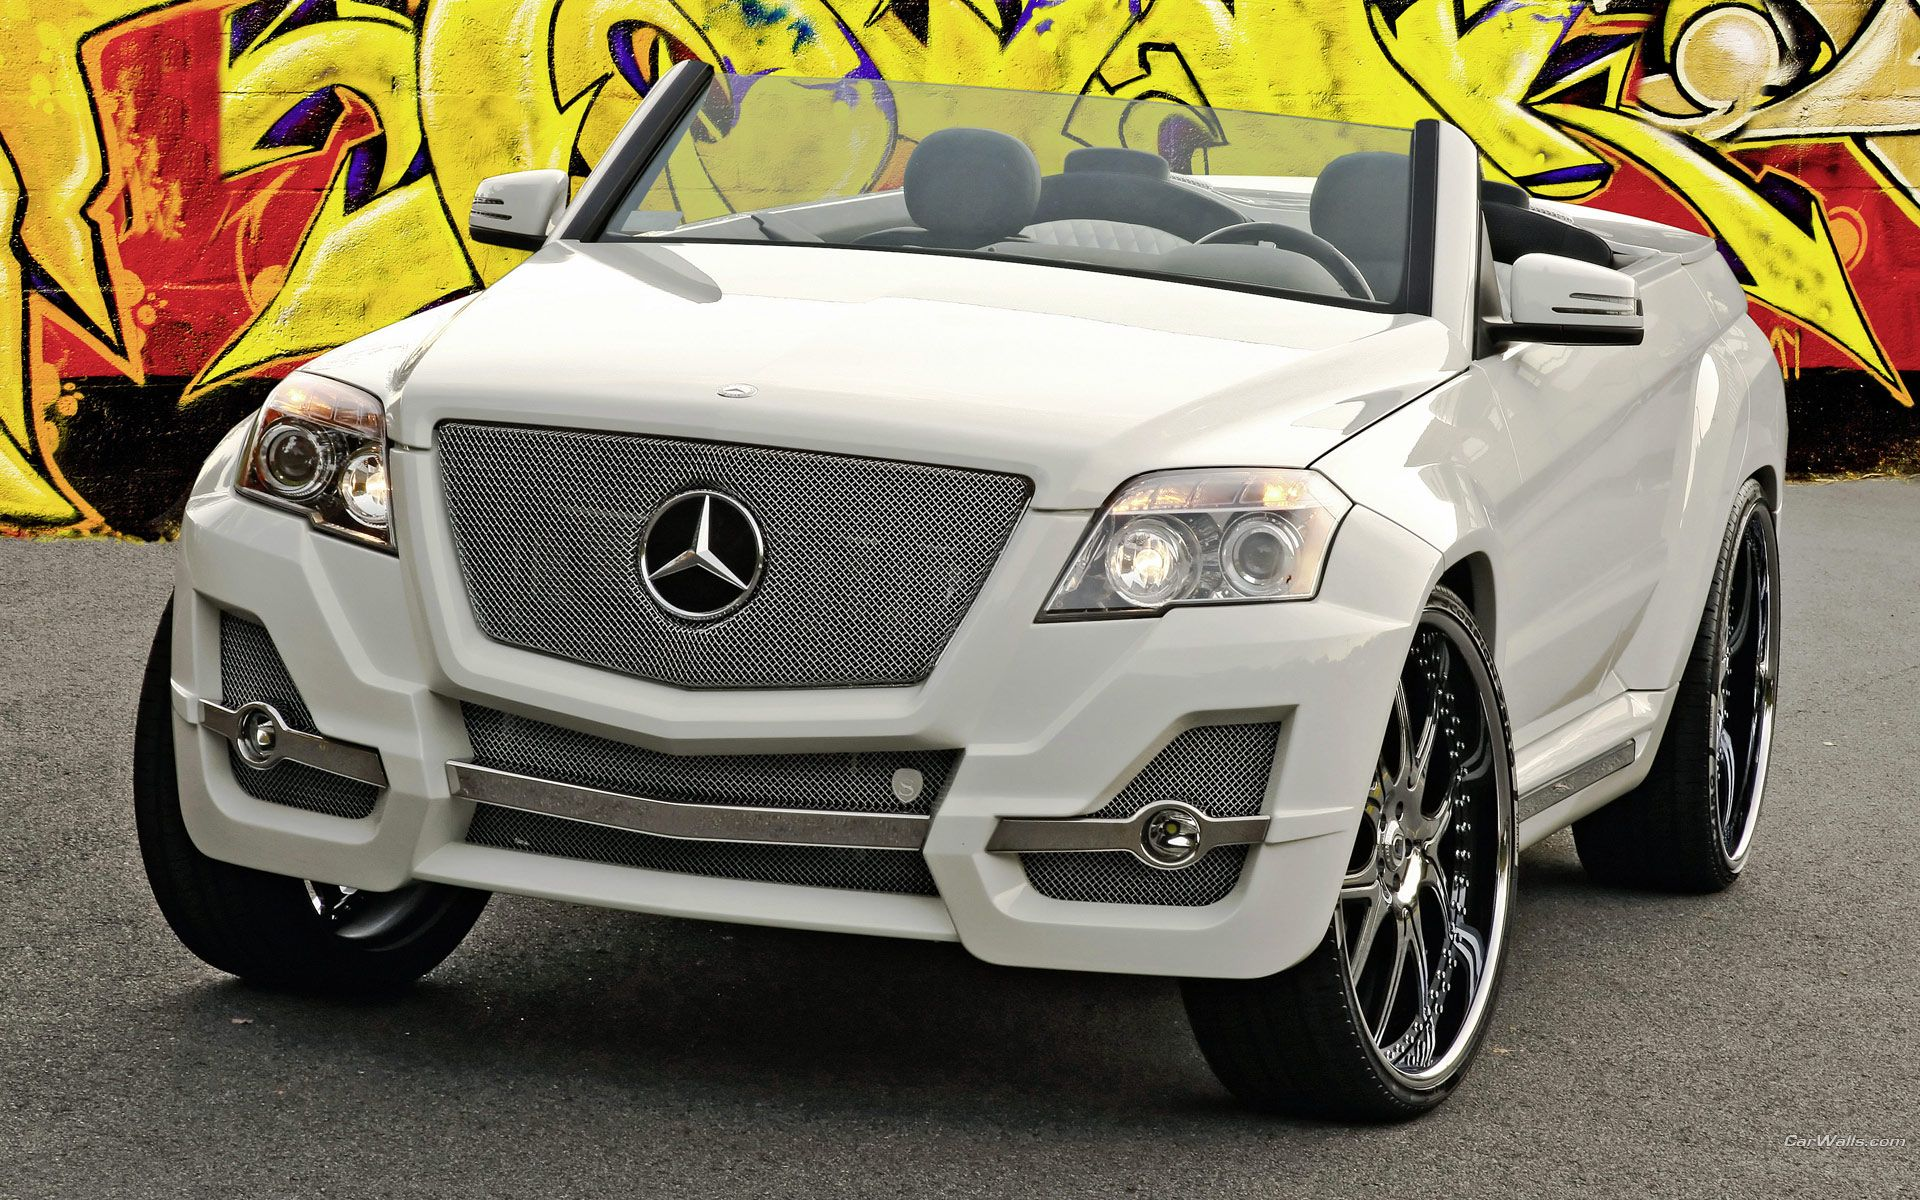 Ultra Hd Mb Glk Brabus 1371 Is This A Real Car If So I Need It 350 Engine Diagram